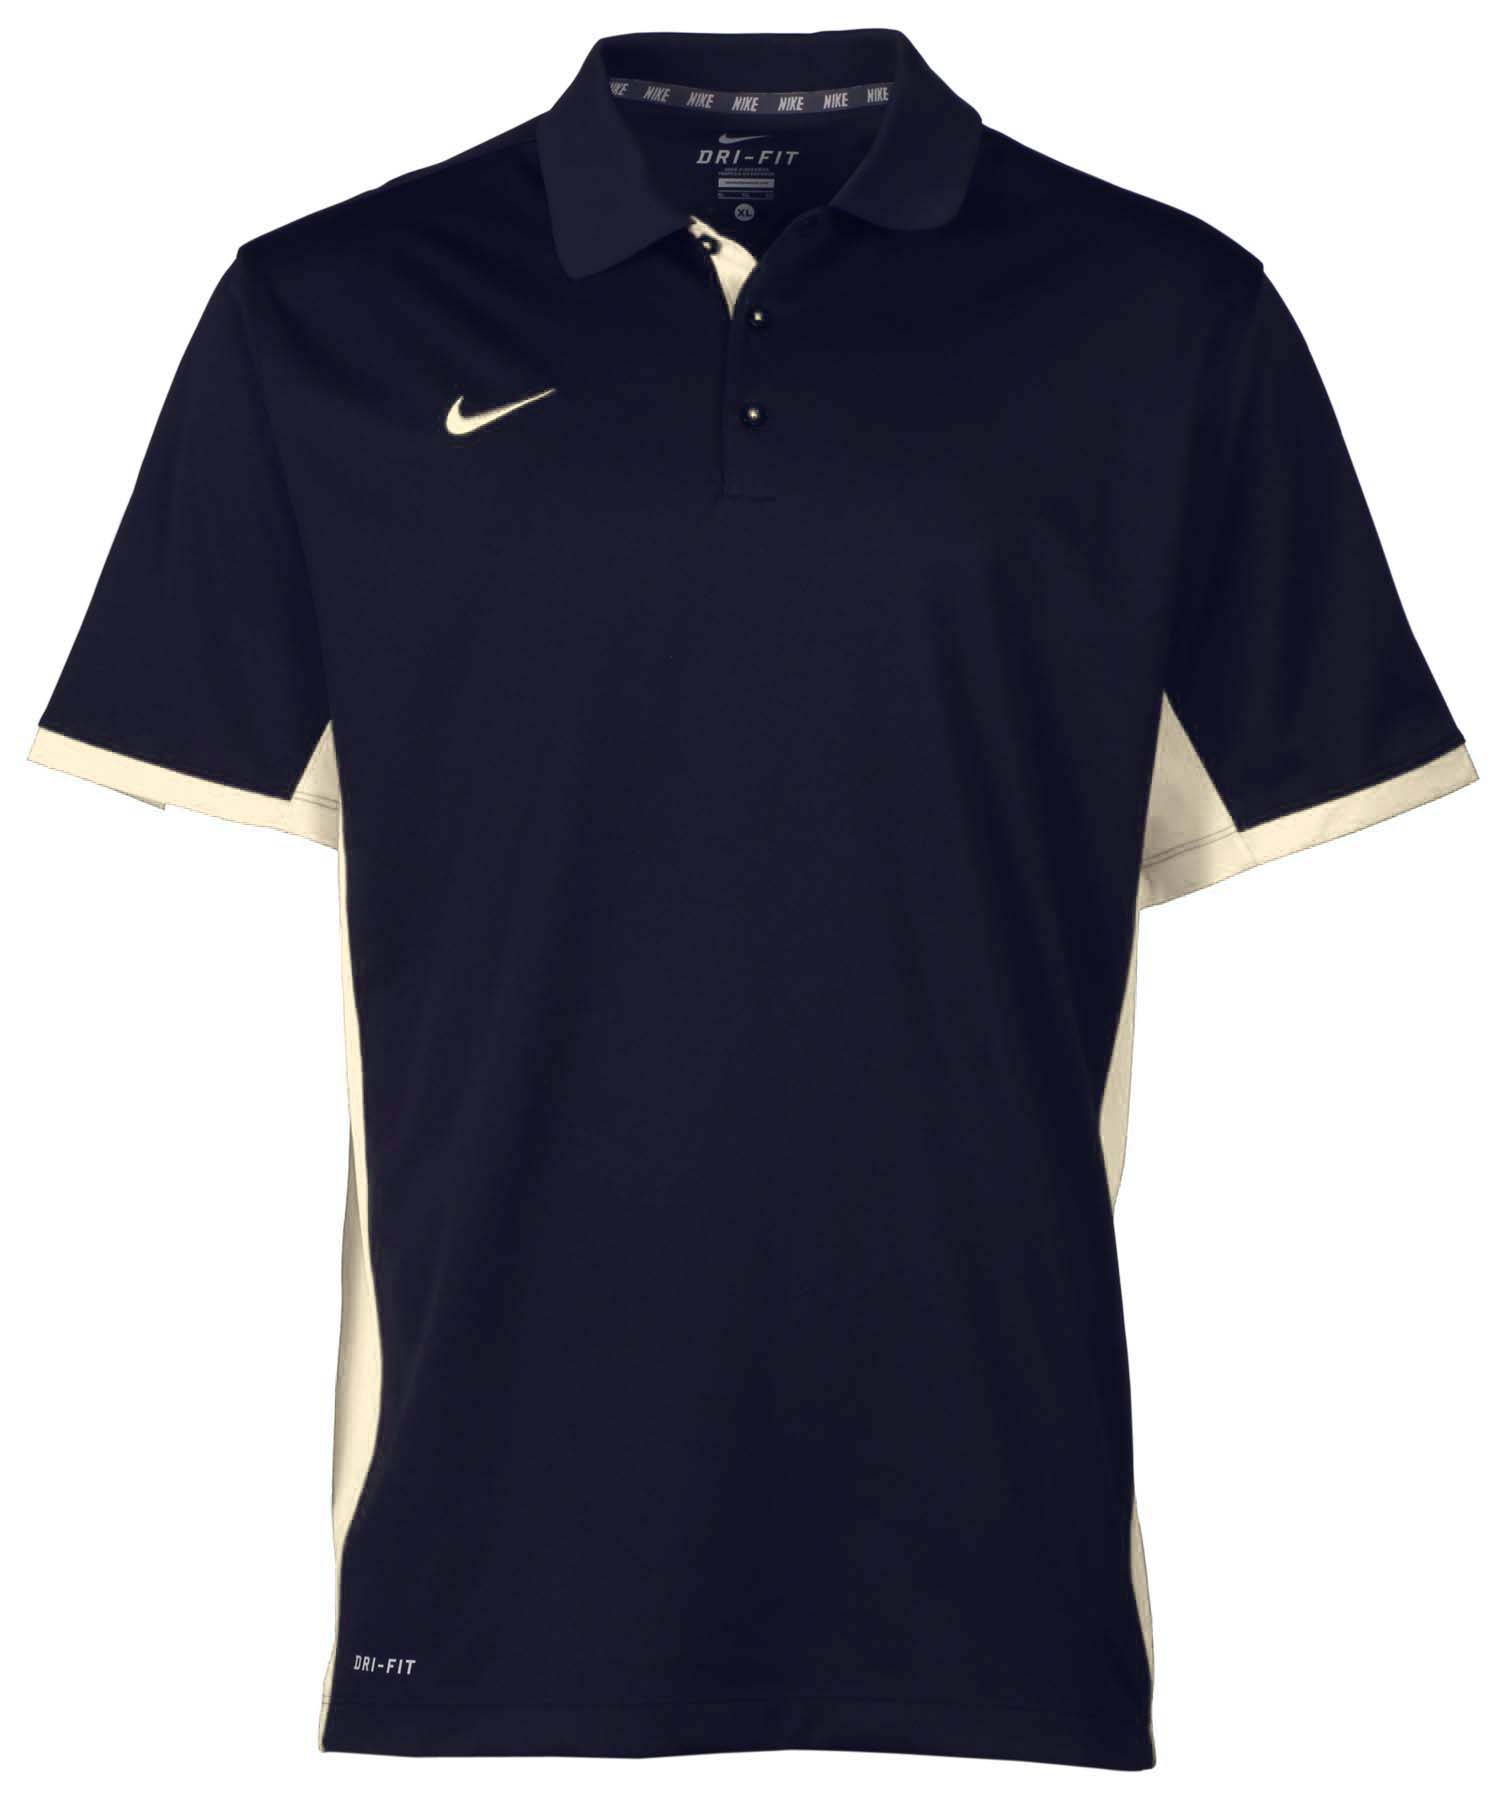 Nike Men's Dri-Fit Performance Sideline Polo Shirt | eBay